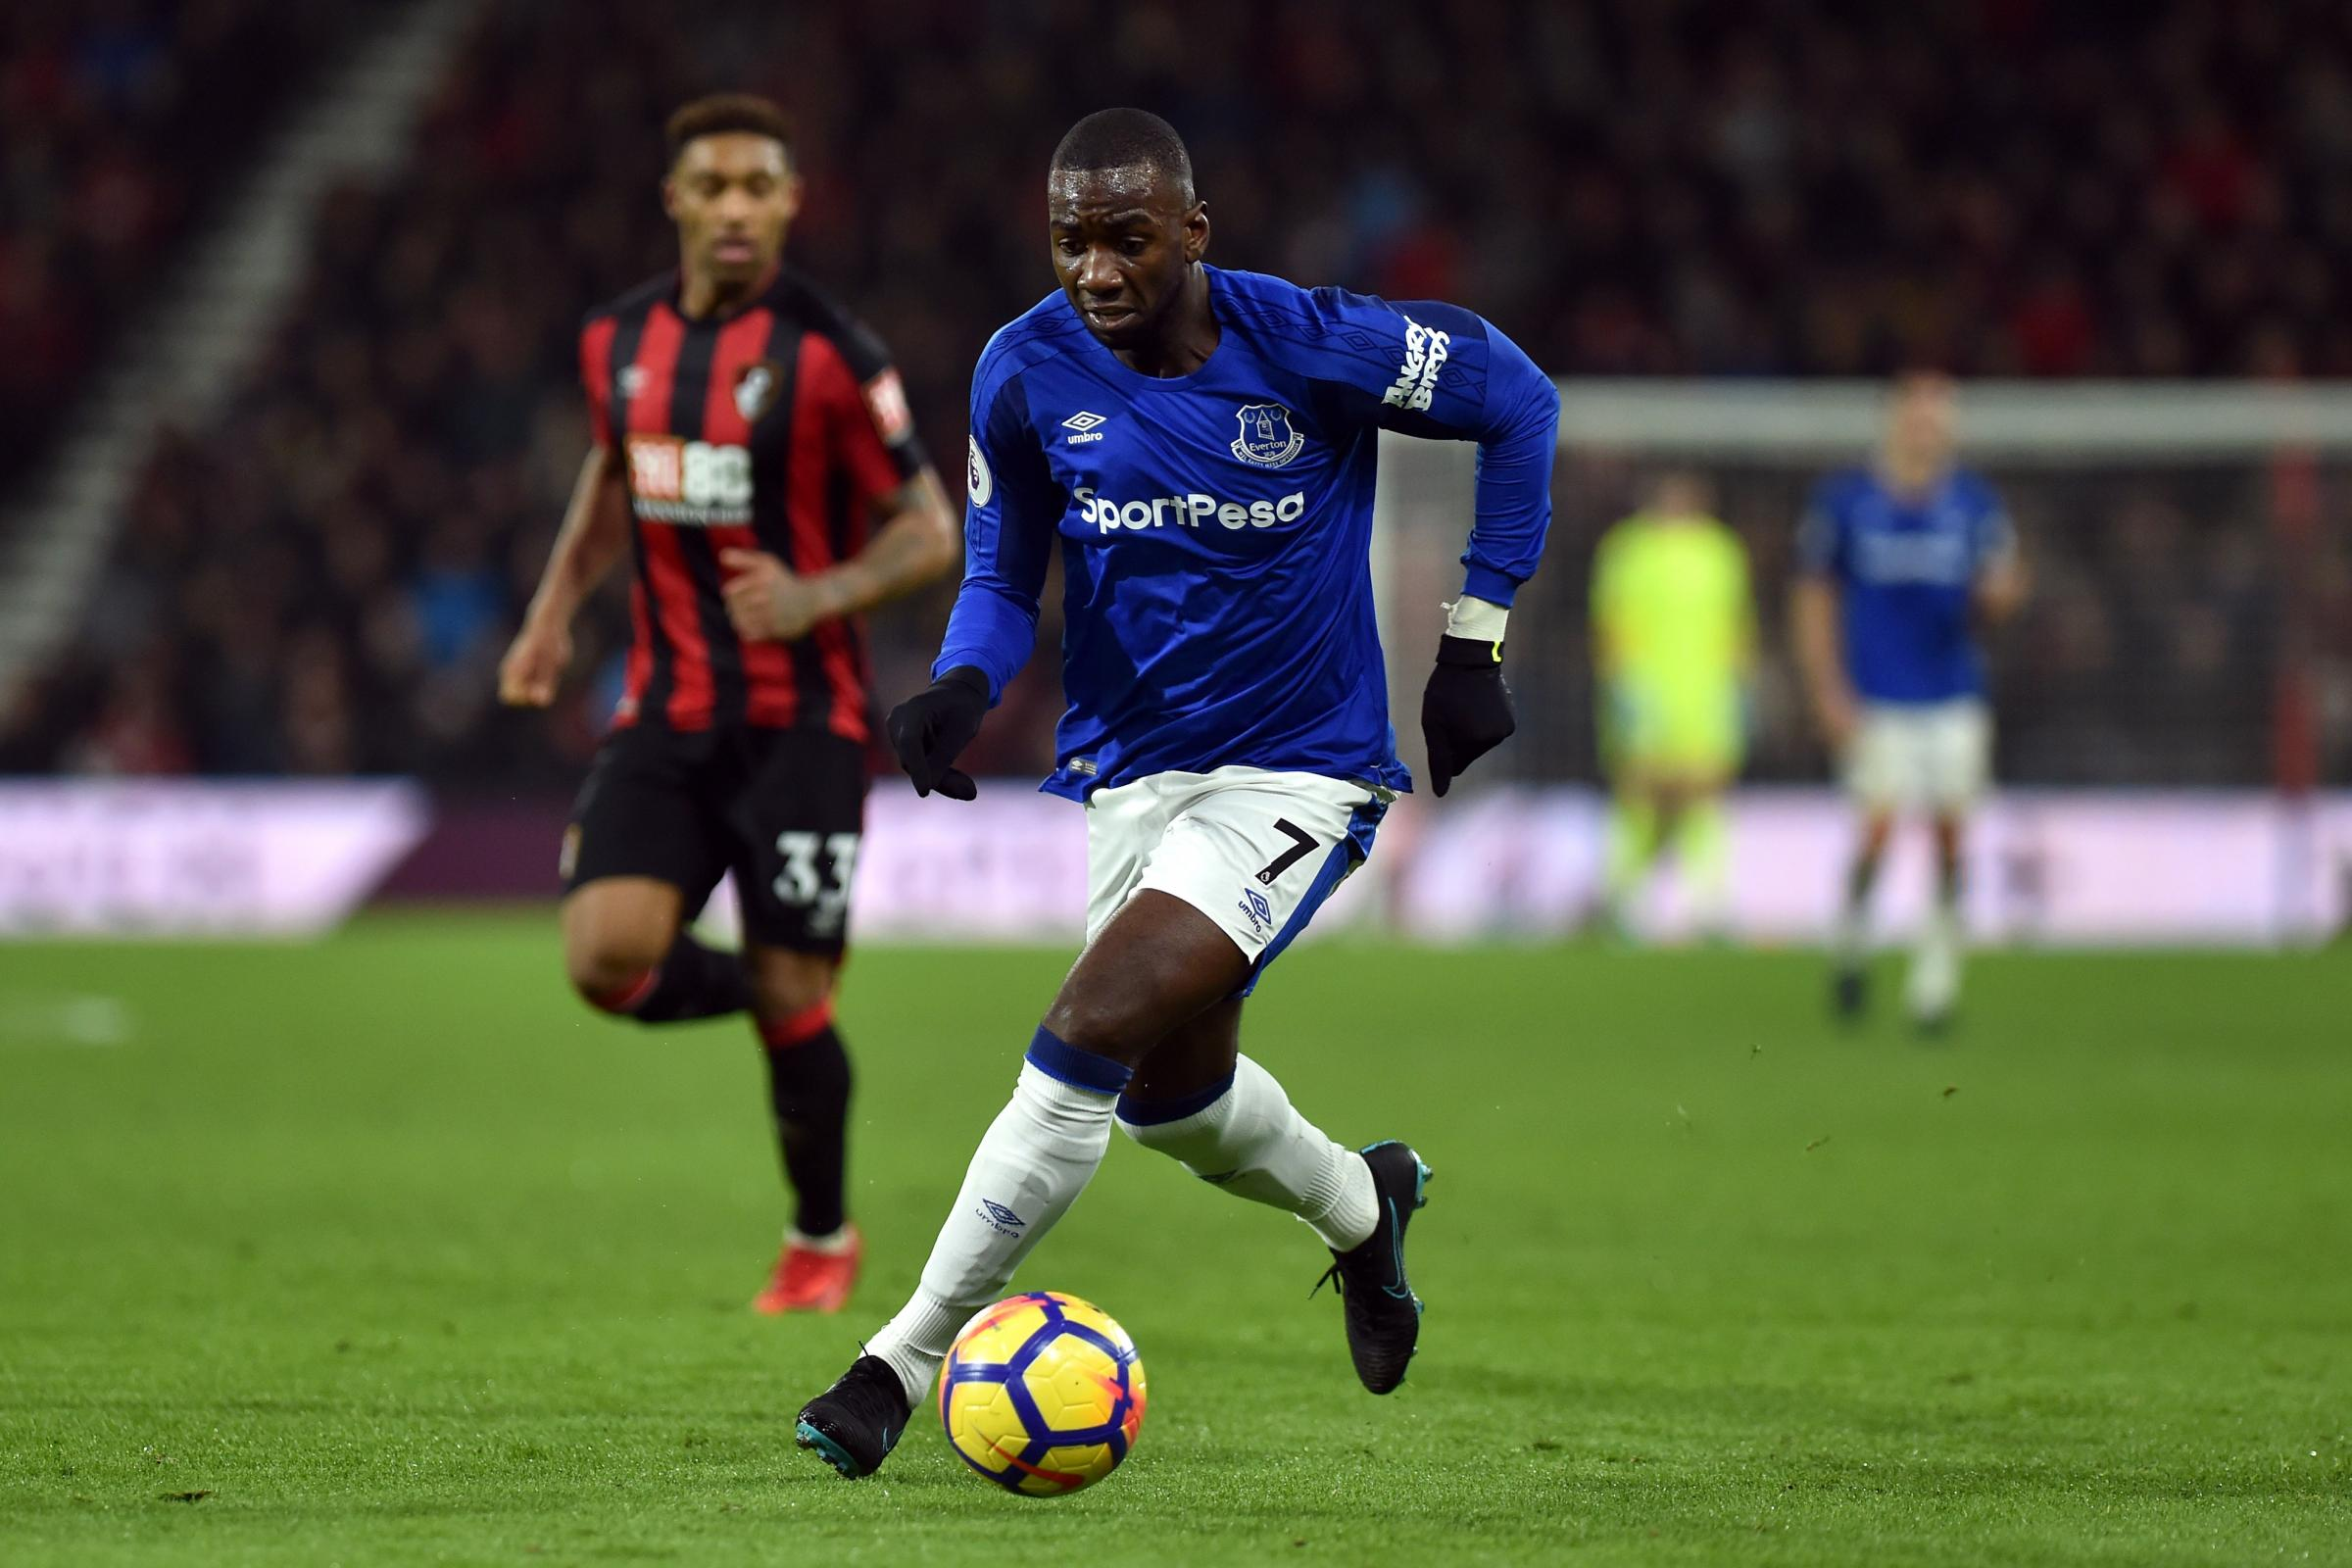 Middlesbrough are in talks with Everton's Yannick Bolasie over a proposed loan deal